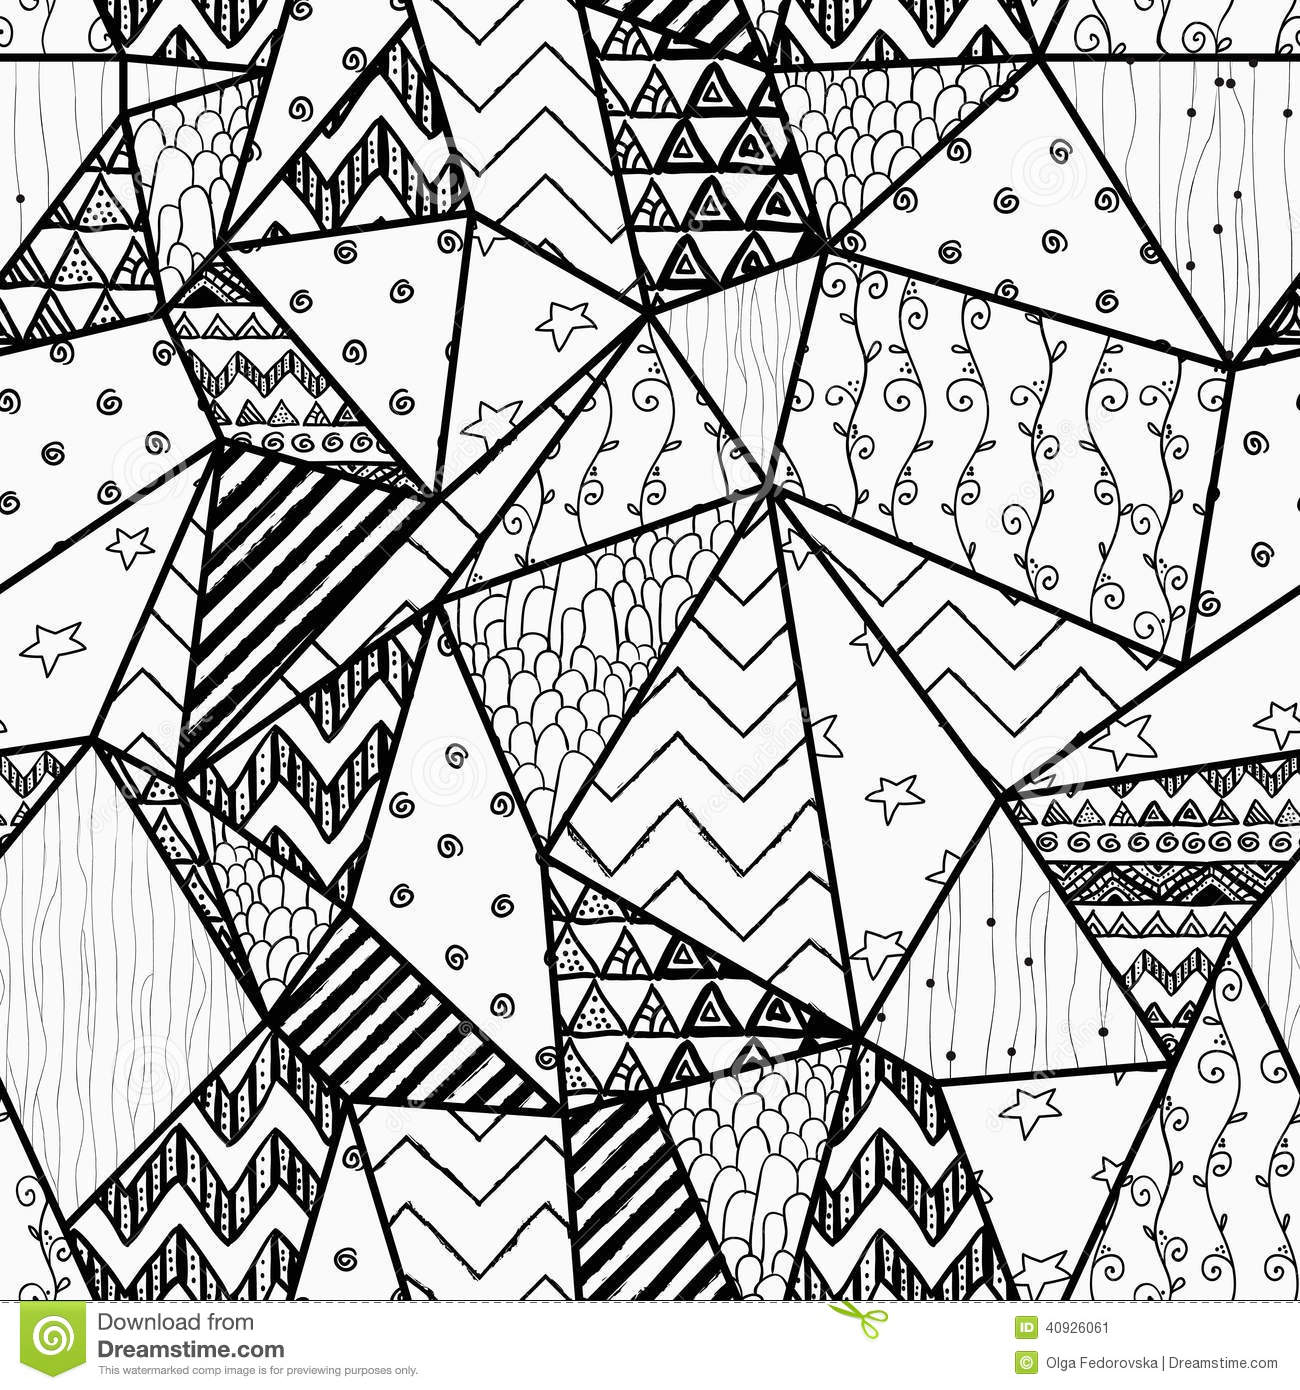 31c4e2ca96430a1c Contemporary Building Design Modern Contemporary Villa Design together with Corbusier Savoye besides Stock Illustration Geometric Hand Drawn Abstract Seamless Background Black White Pattern Polygons Cute Patterns Inside Them Vector Image40926061 also Plage De Calvi Corse Poster By Roger Broders also Bigbangvisuals. on mid century modern drawings